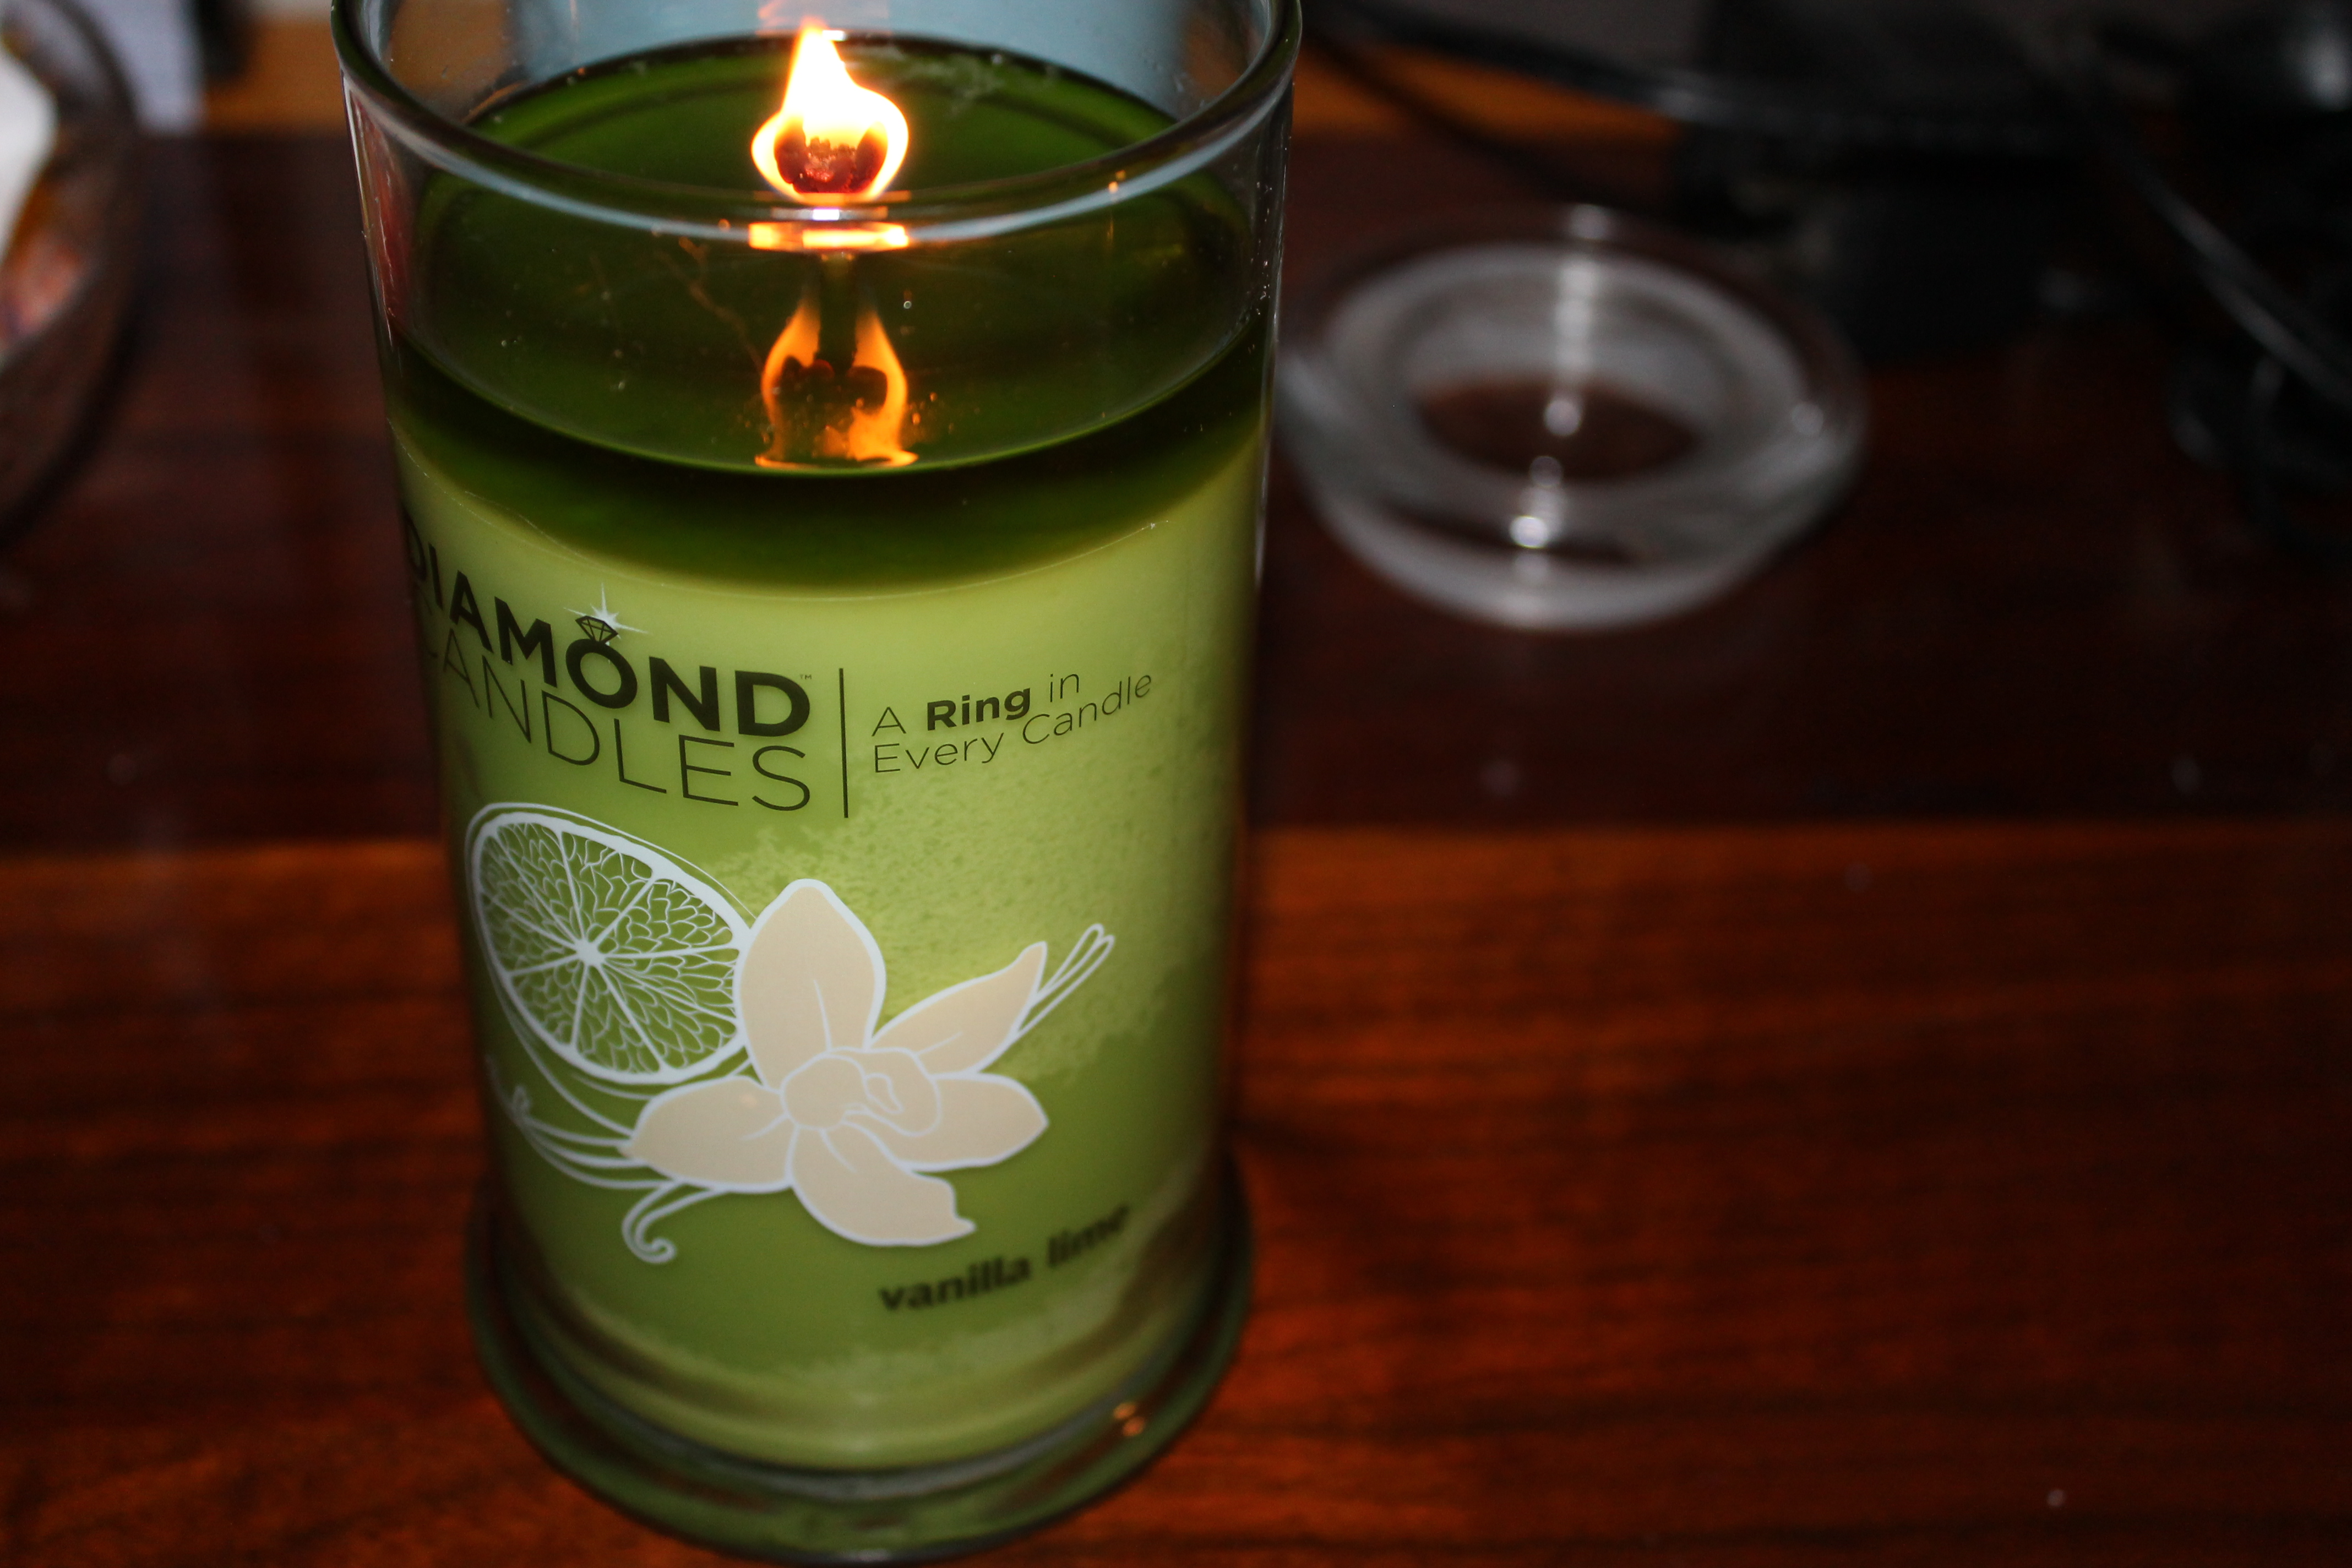 Diamond Candles, prizes worth $10-$5,000. #Giveaway